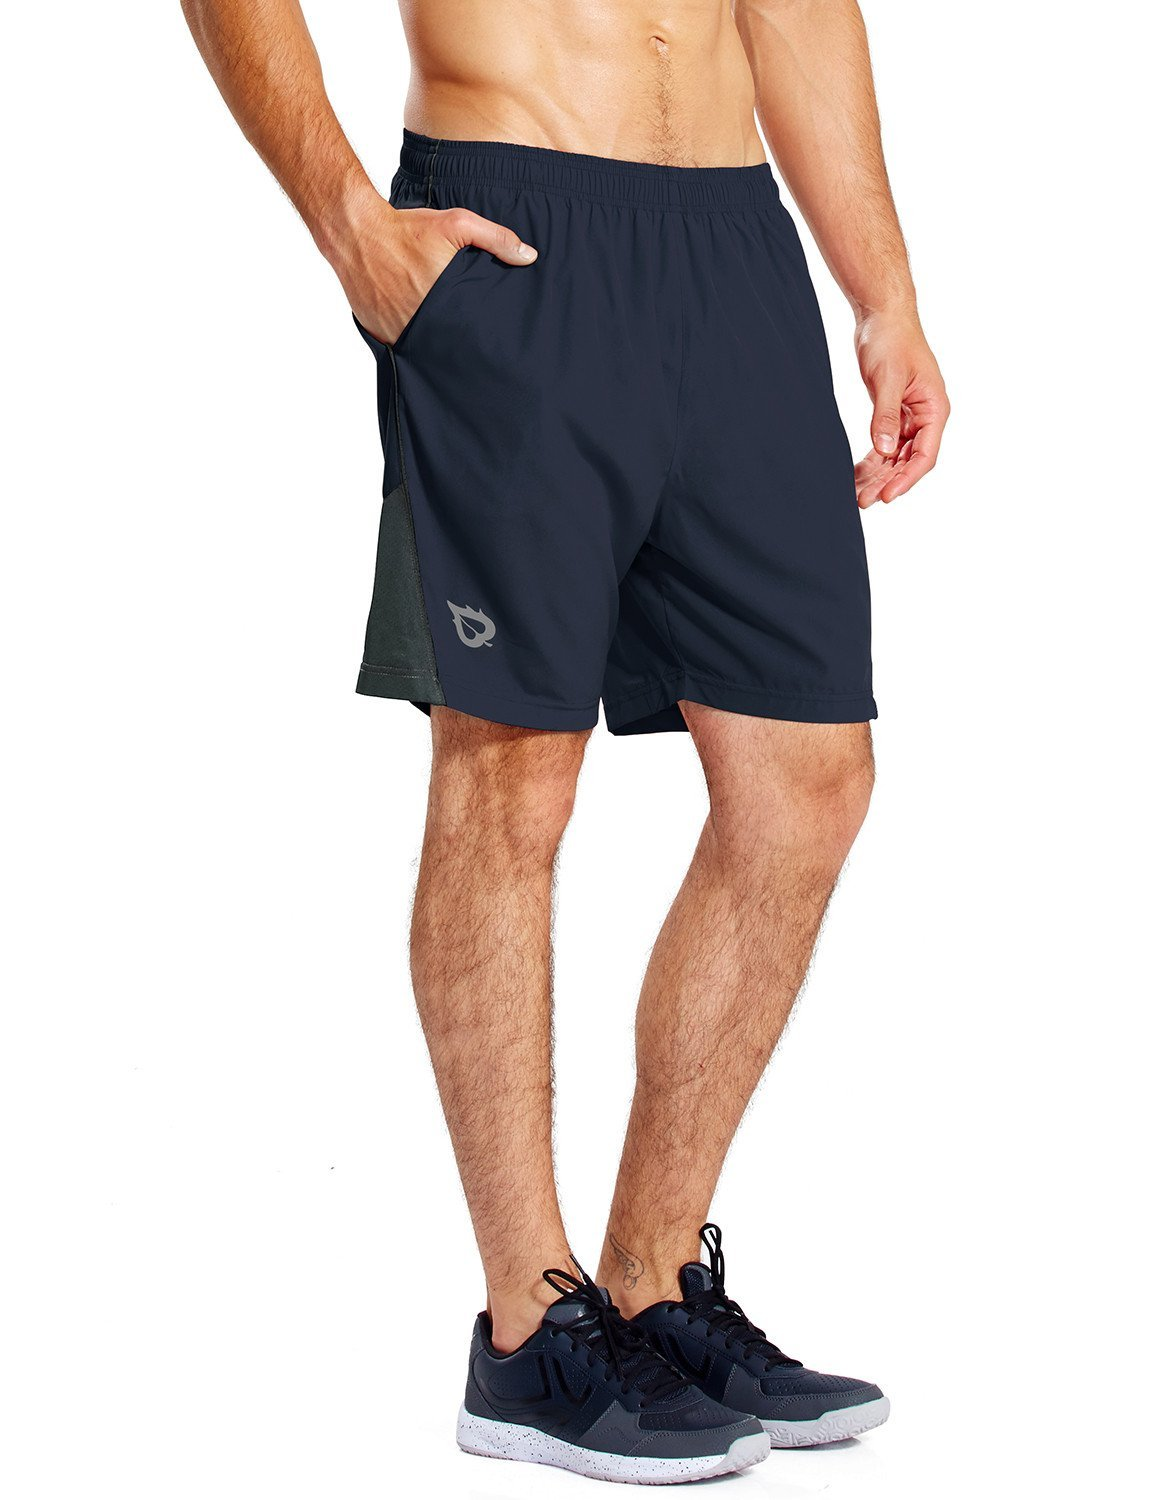 Baleaf Men's 7 Inches Quick Dry Workout Running Shorts Mesh Liner Zip Pockets Navy Size XXL by Baleaf